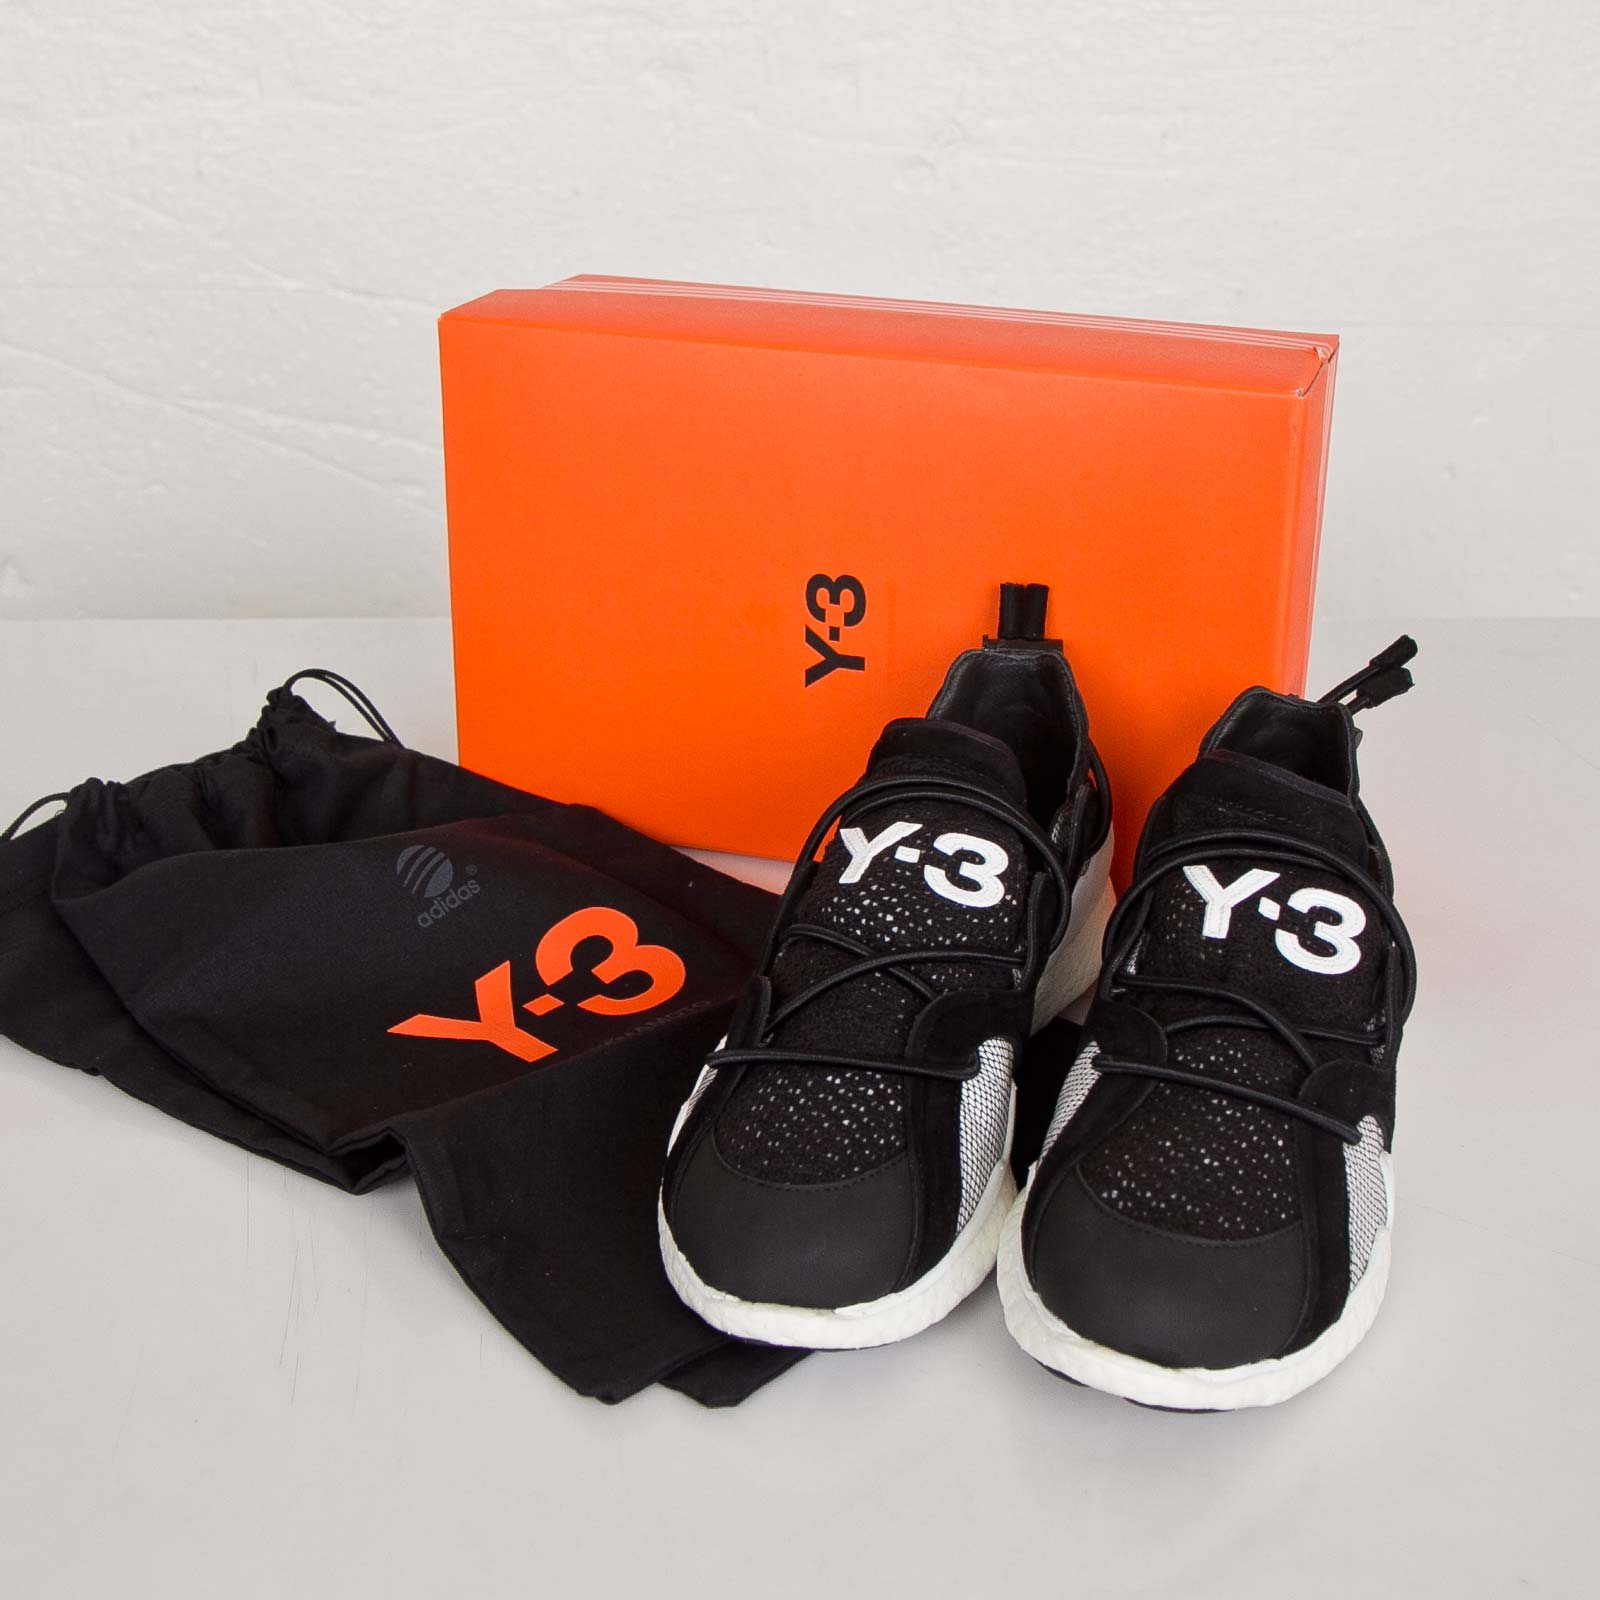 adidas Y 3 Toggle Boost B26334 Basketsnstuff Baskets